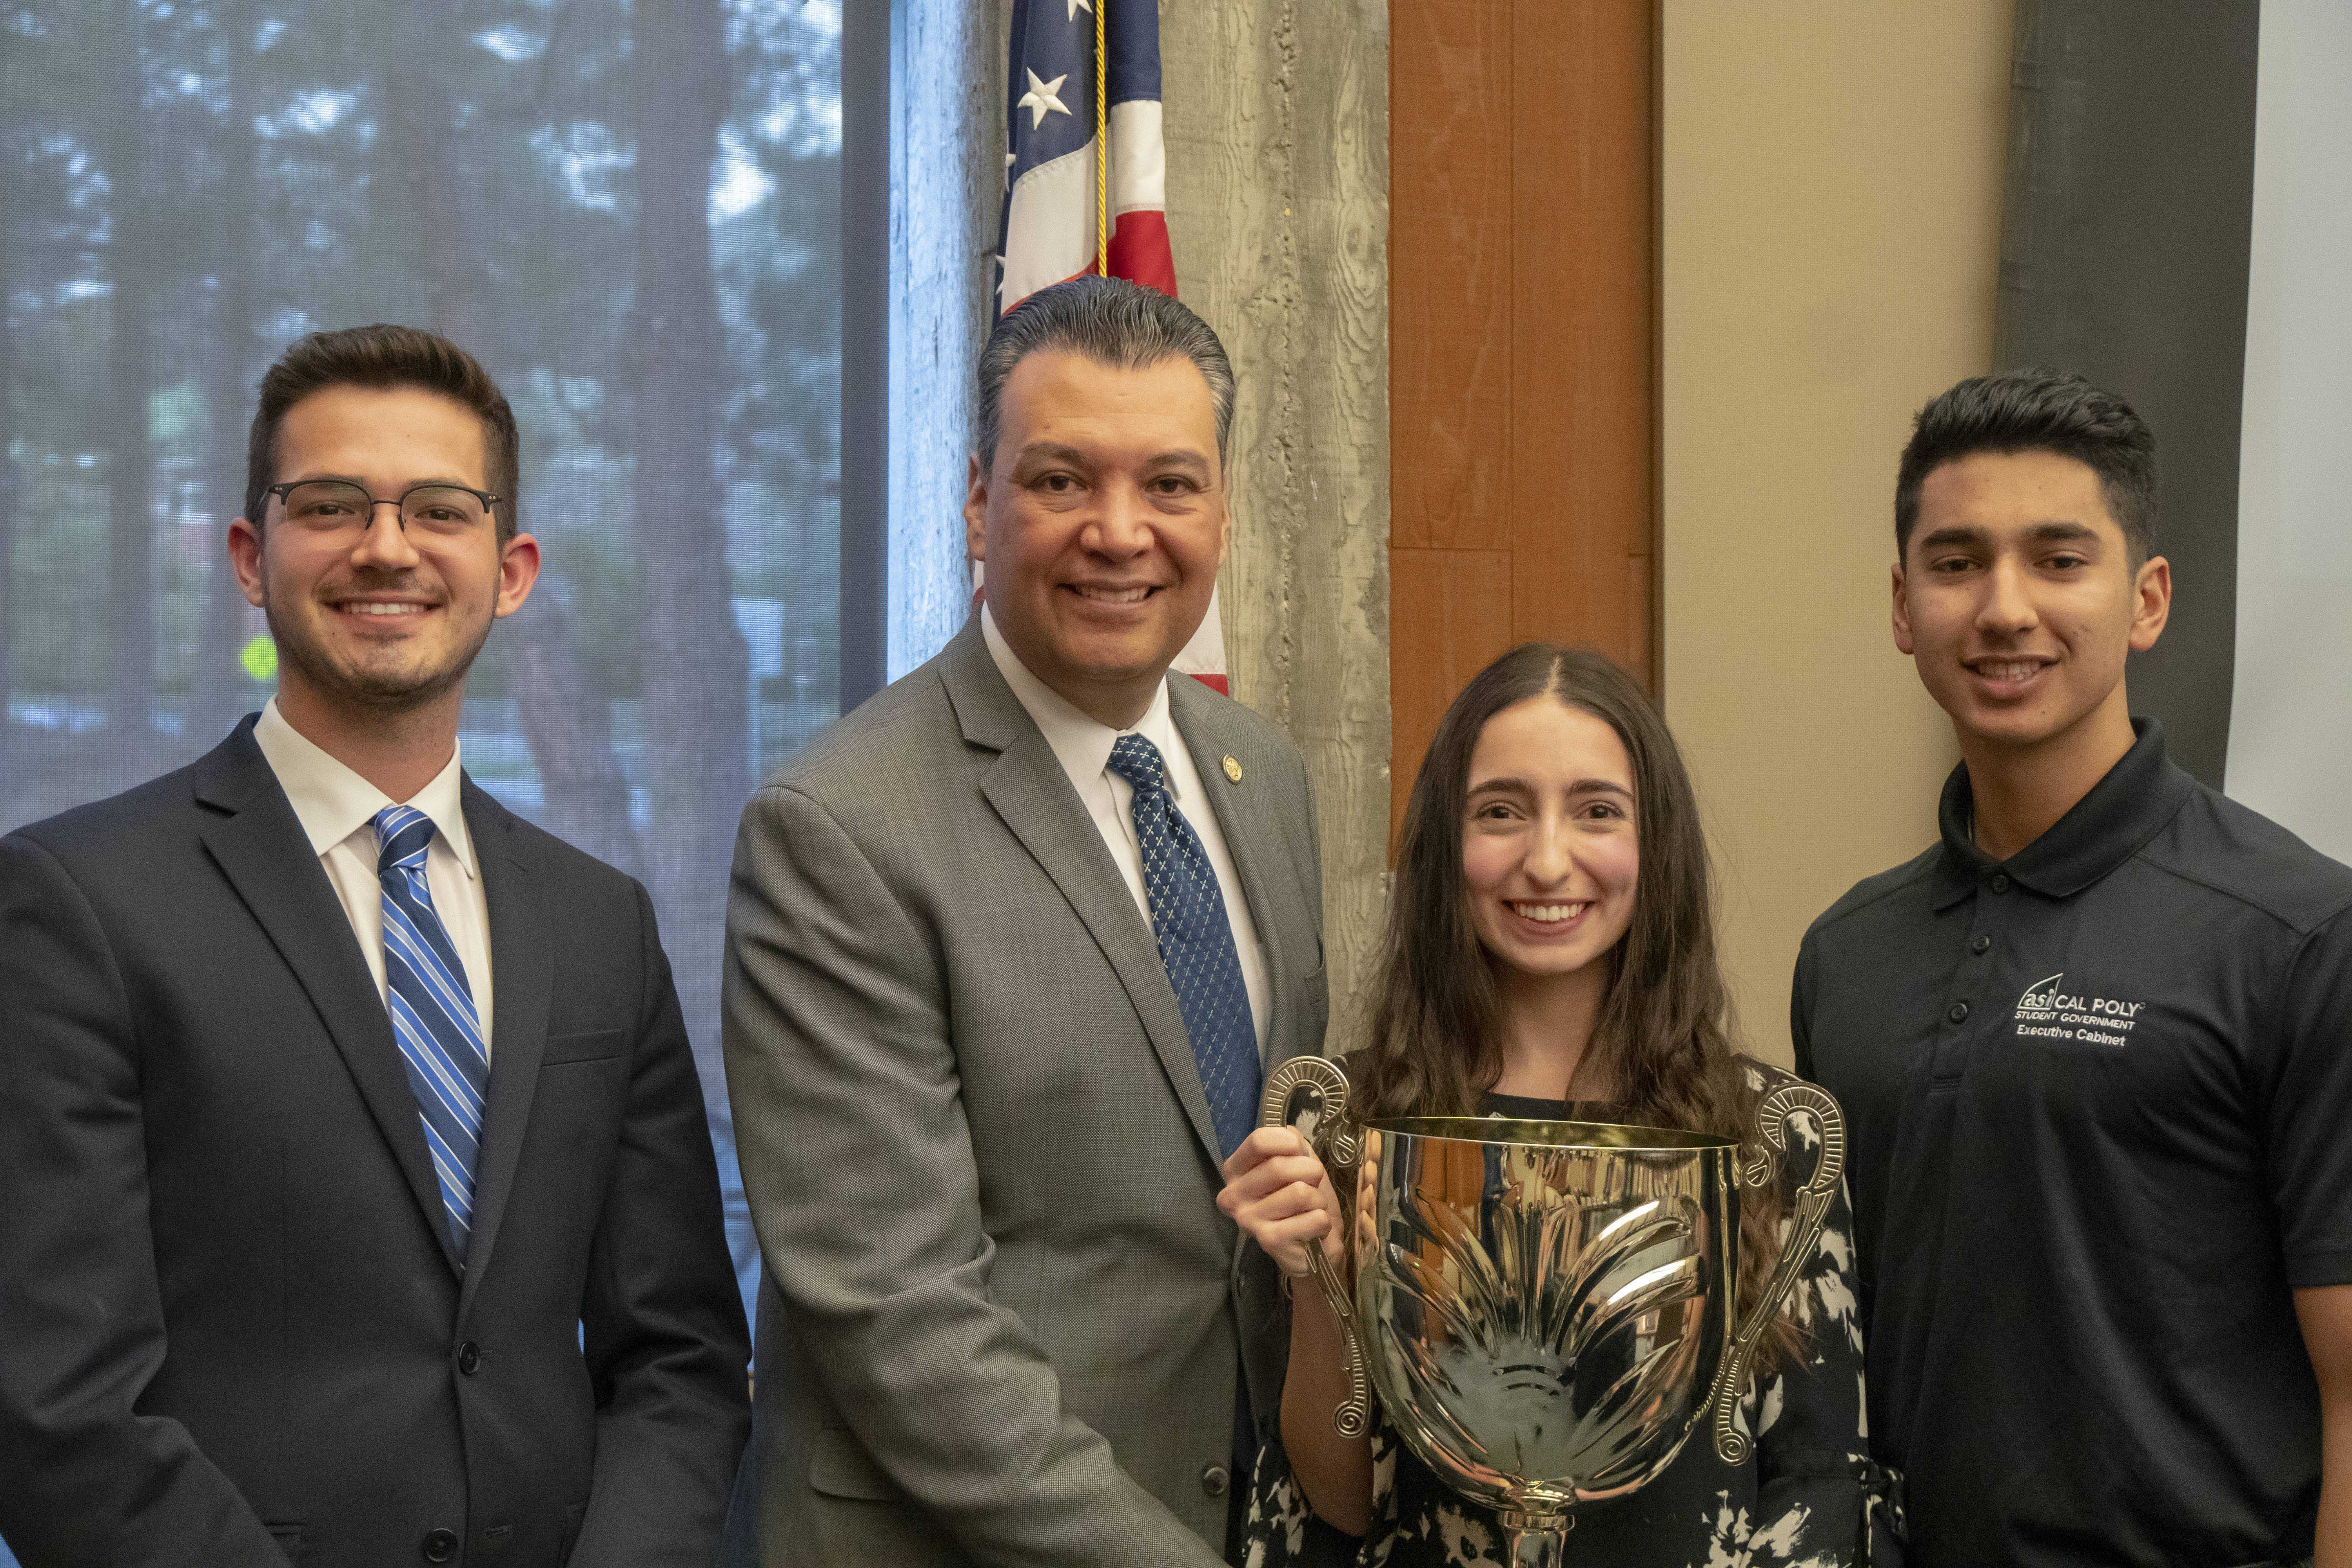 Student Government leaders smile while holding a gold award with California Secretary of State Alex Padilla